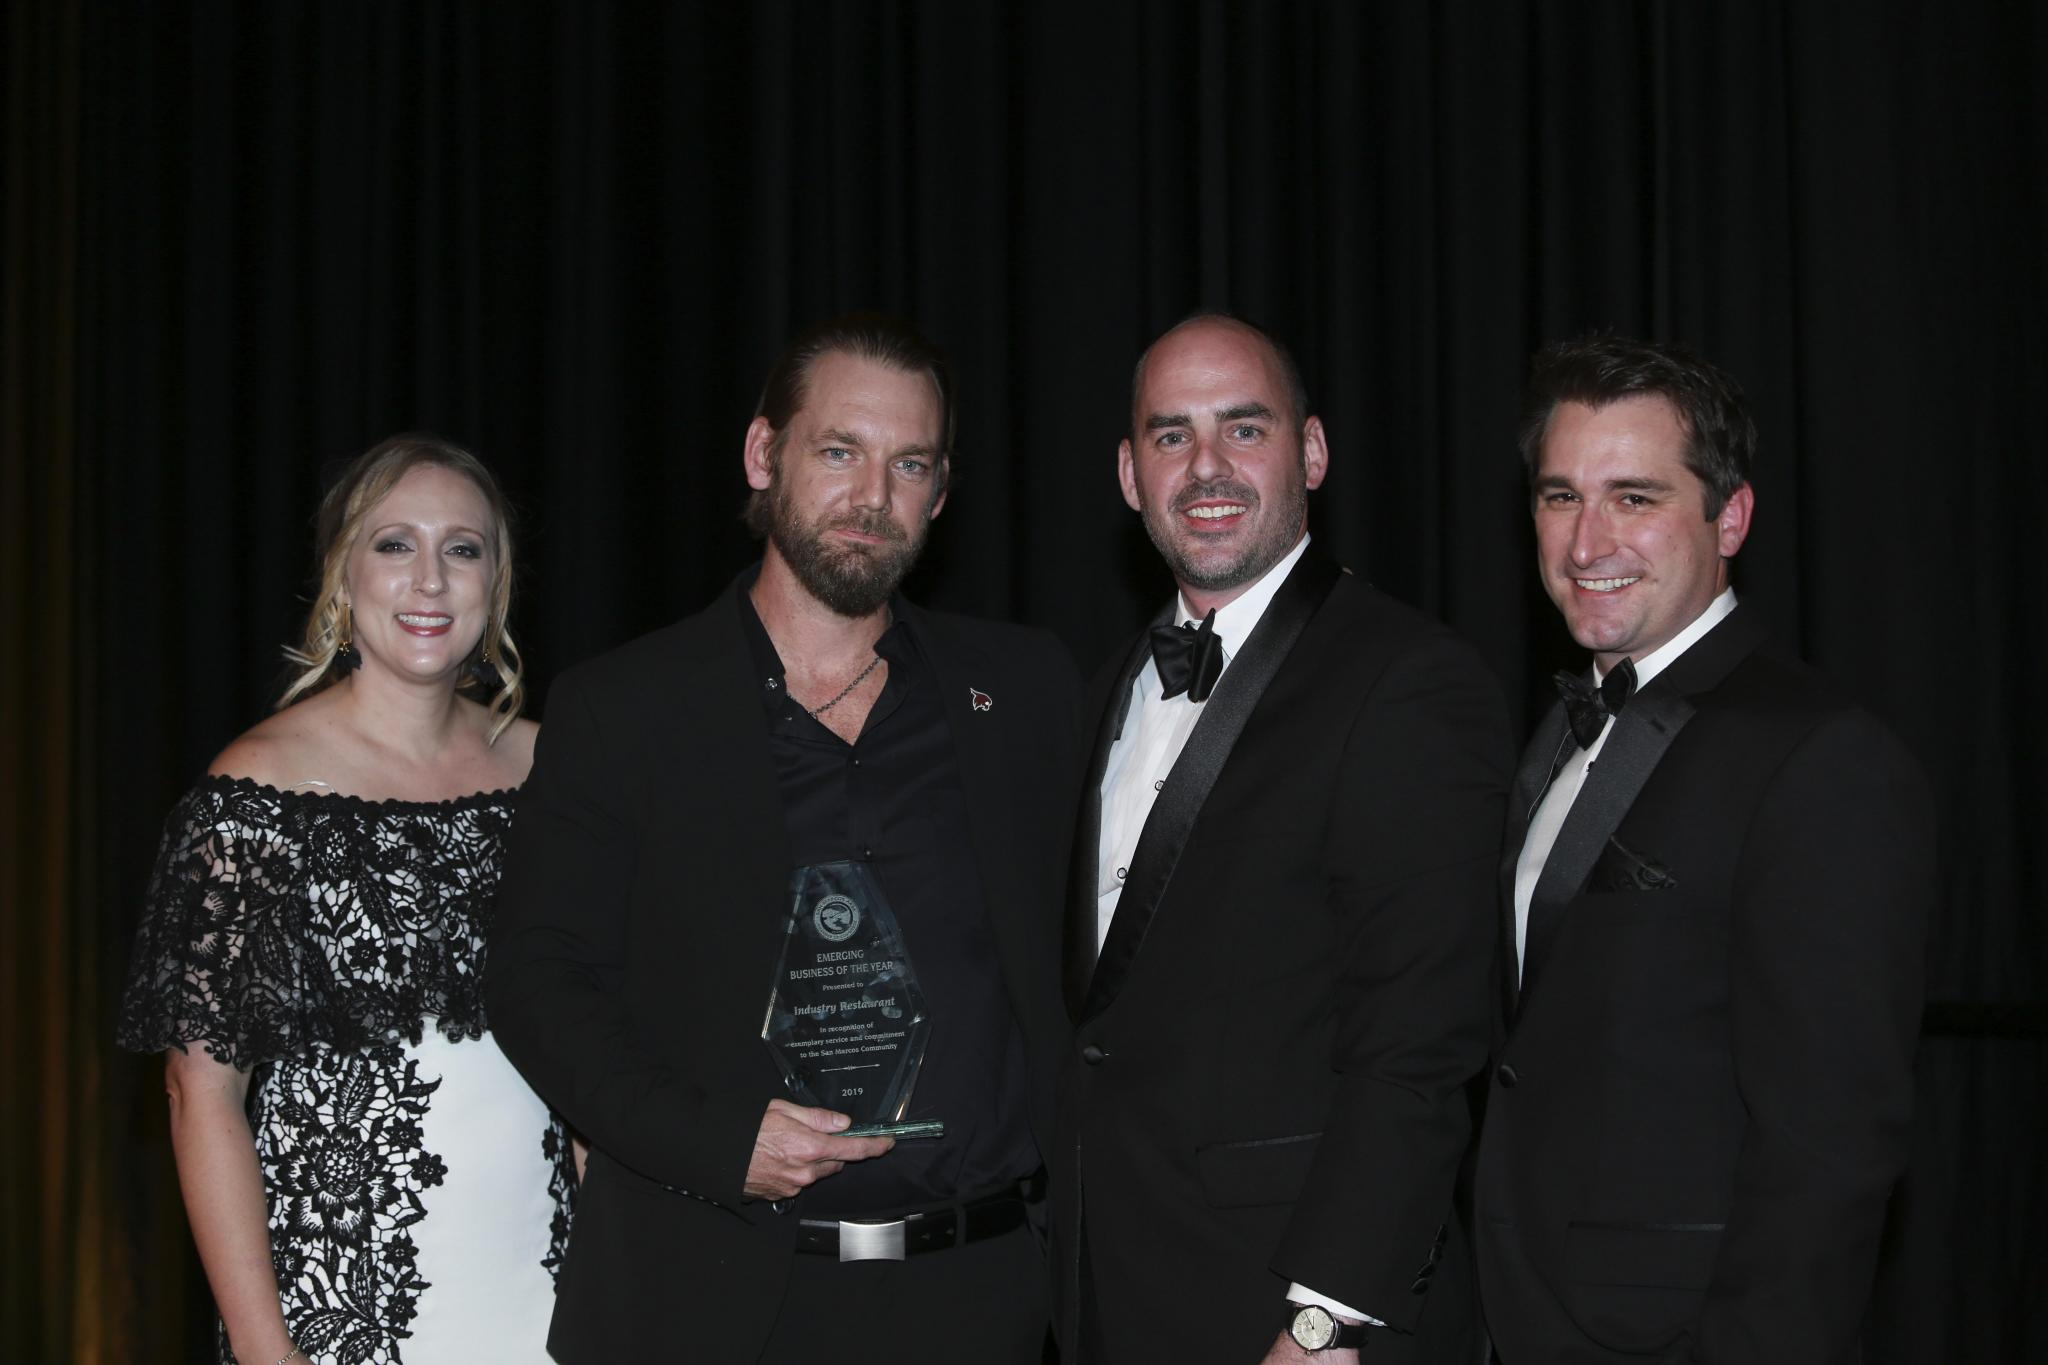 Industry restaurant was named the chamber's Emerging Business of the Year.